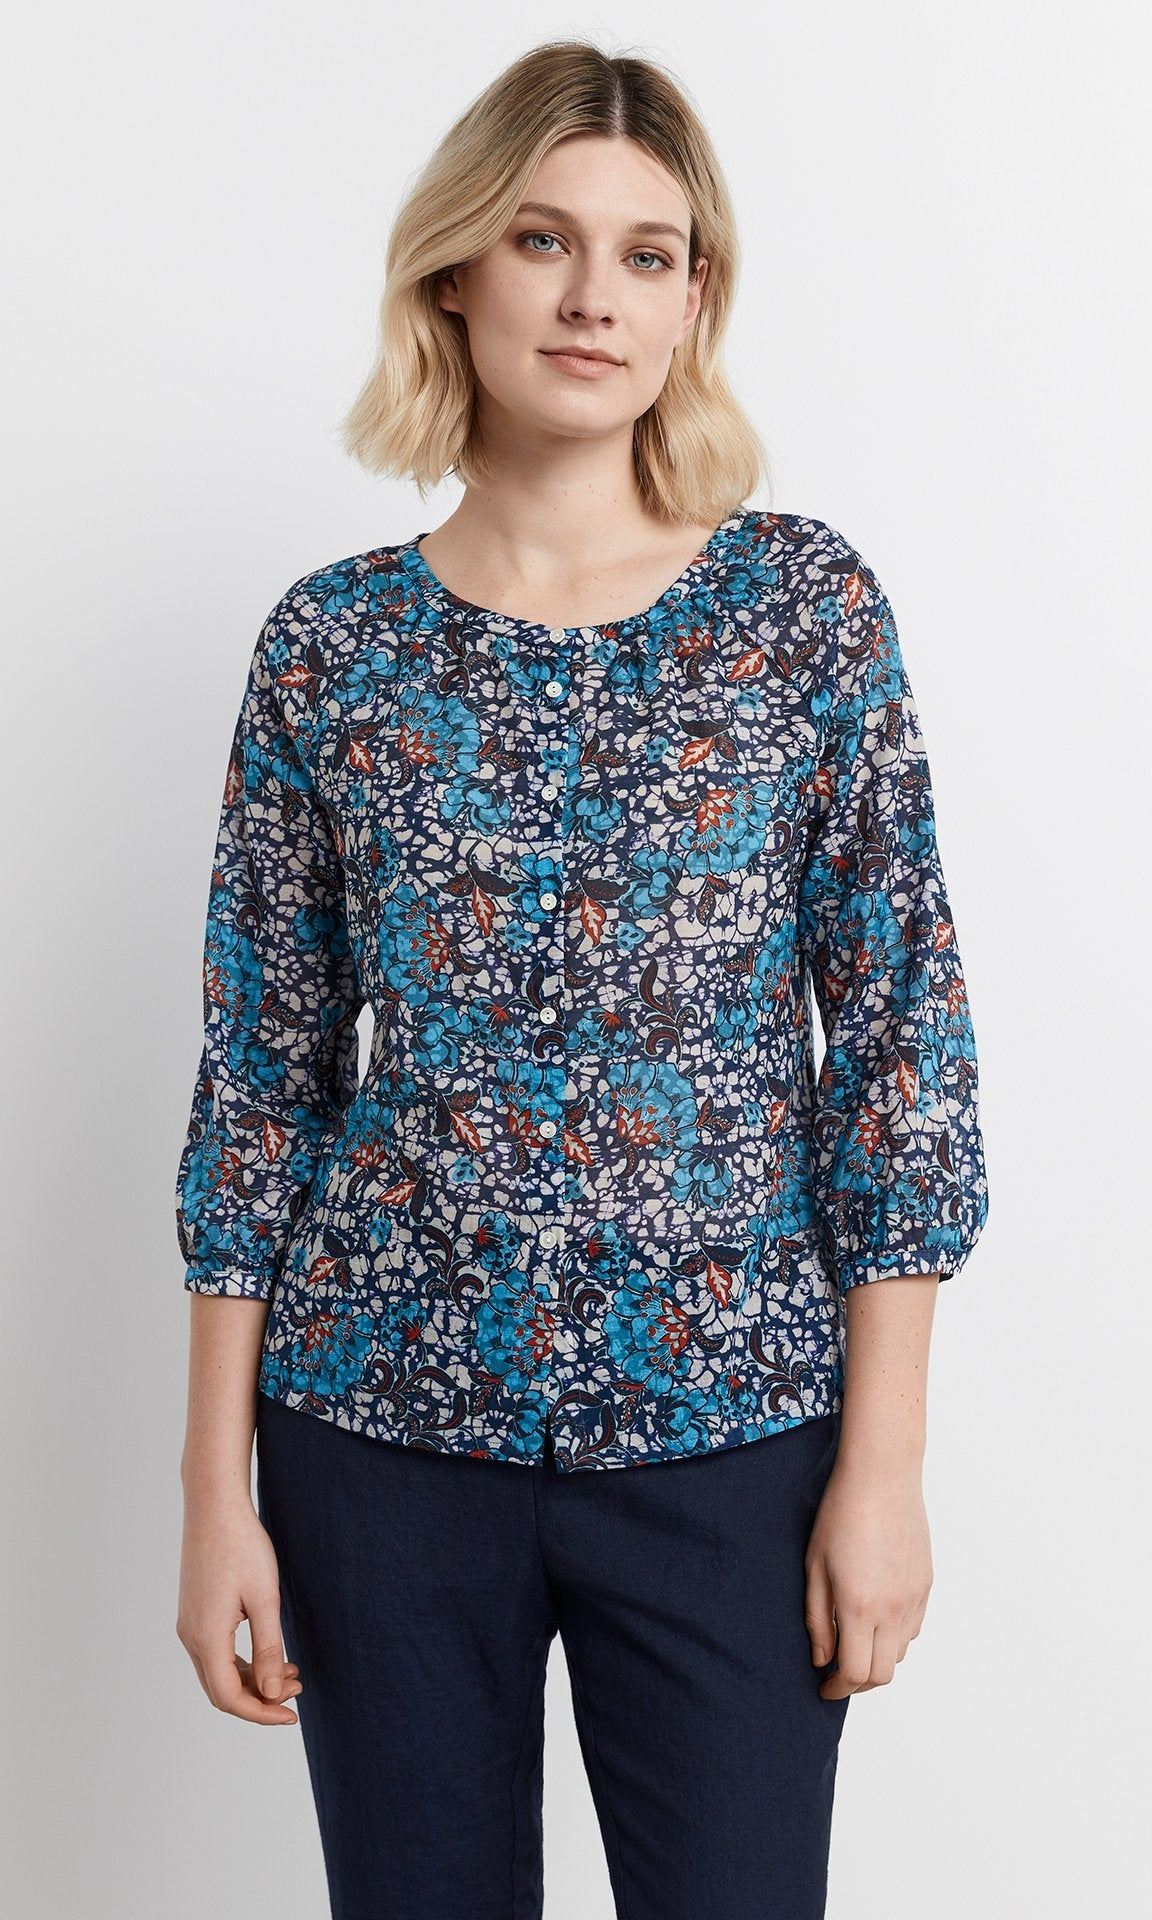 Traversa Top - Blue